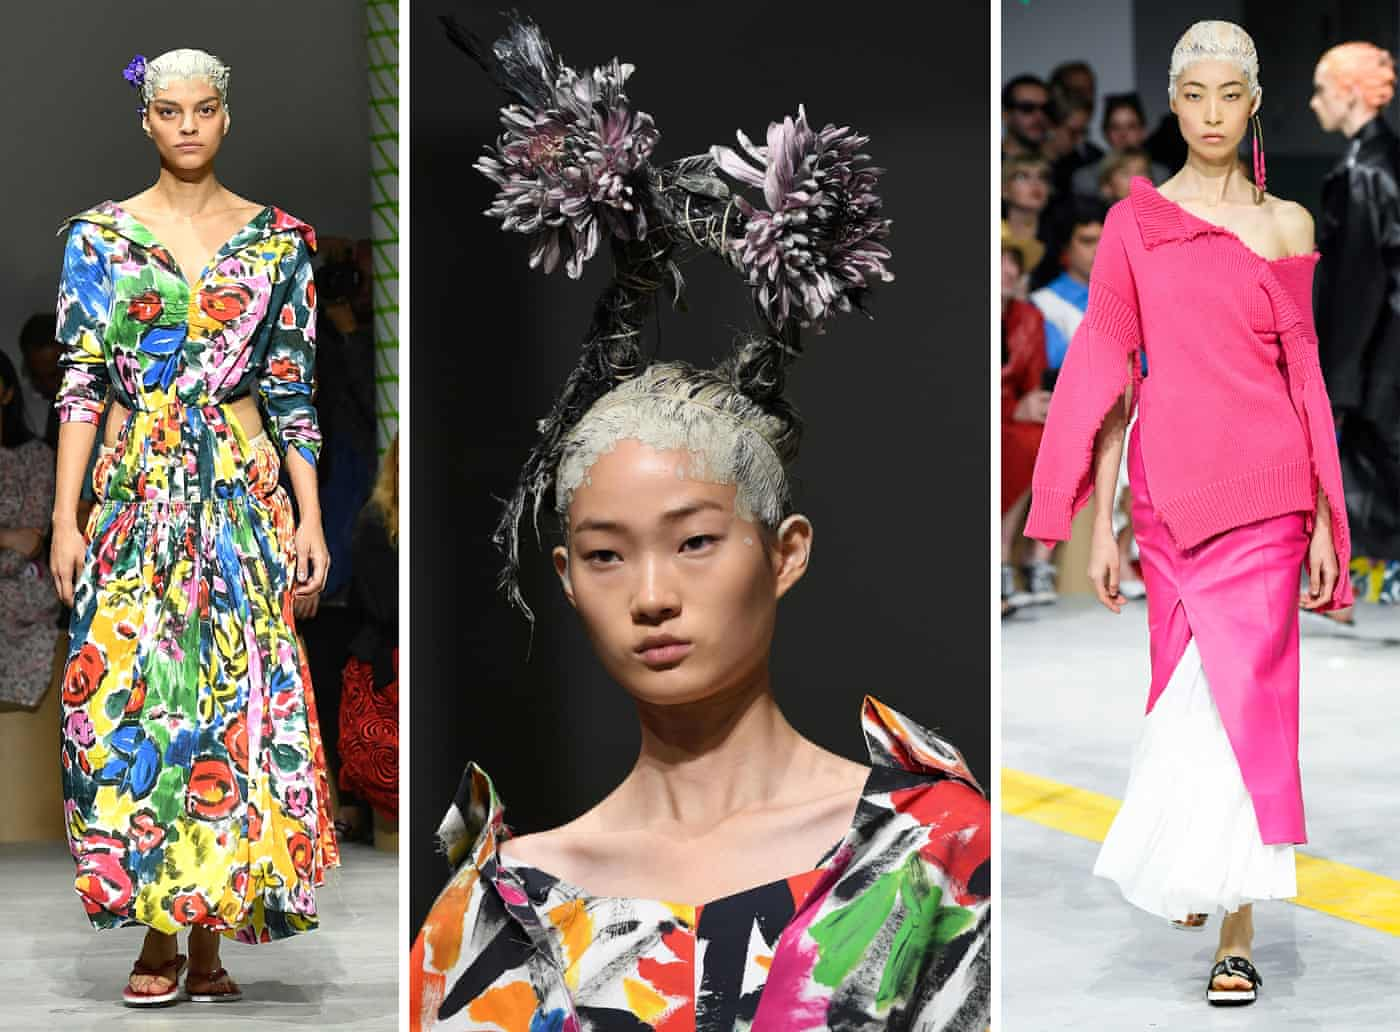 'Our joyous process': Marni SS20 show repurposes waste as high art